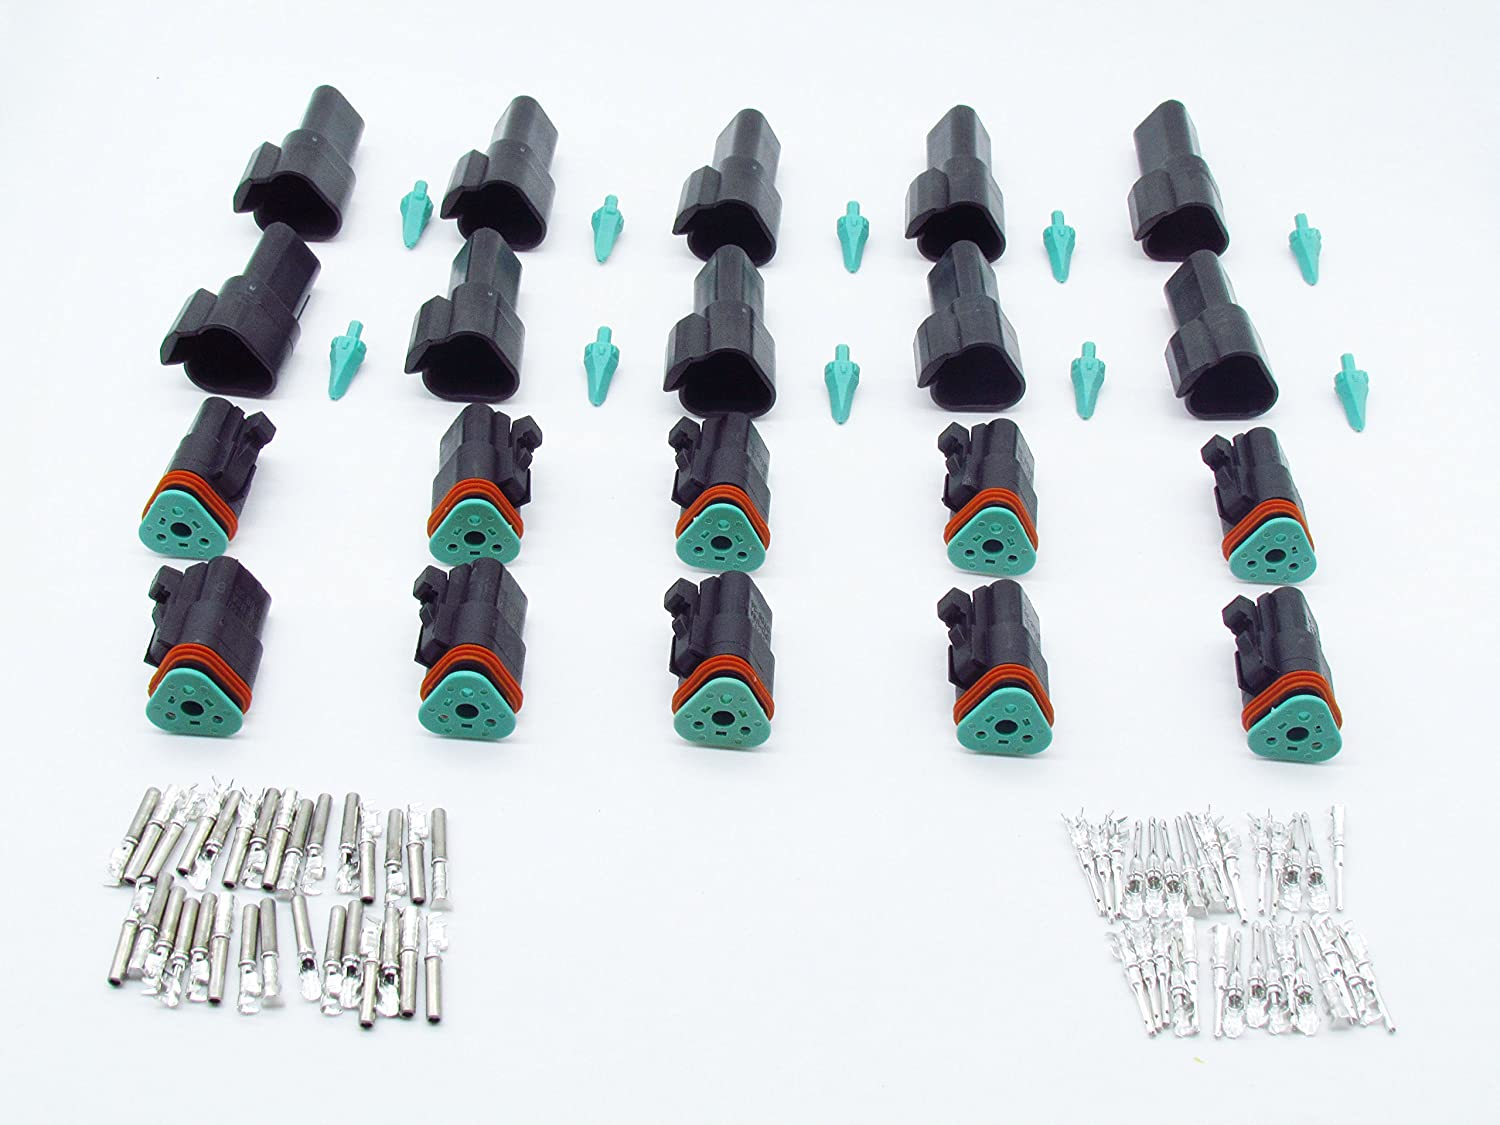 CNKF 10 Sets DT 3 Pin black male female adapter auto Waterproof Electrical Wire Connector Plug DT06-3S DT04-3P